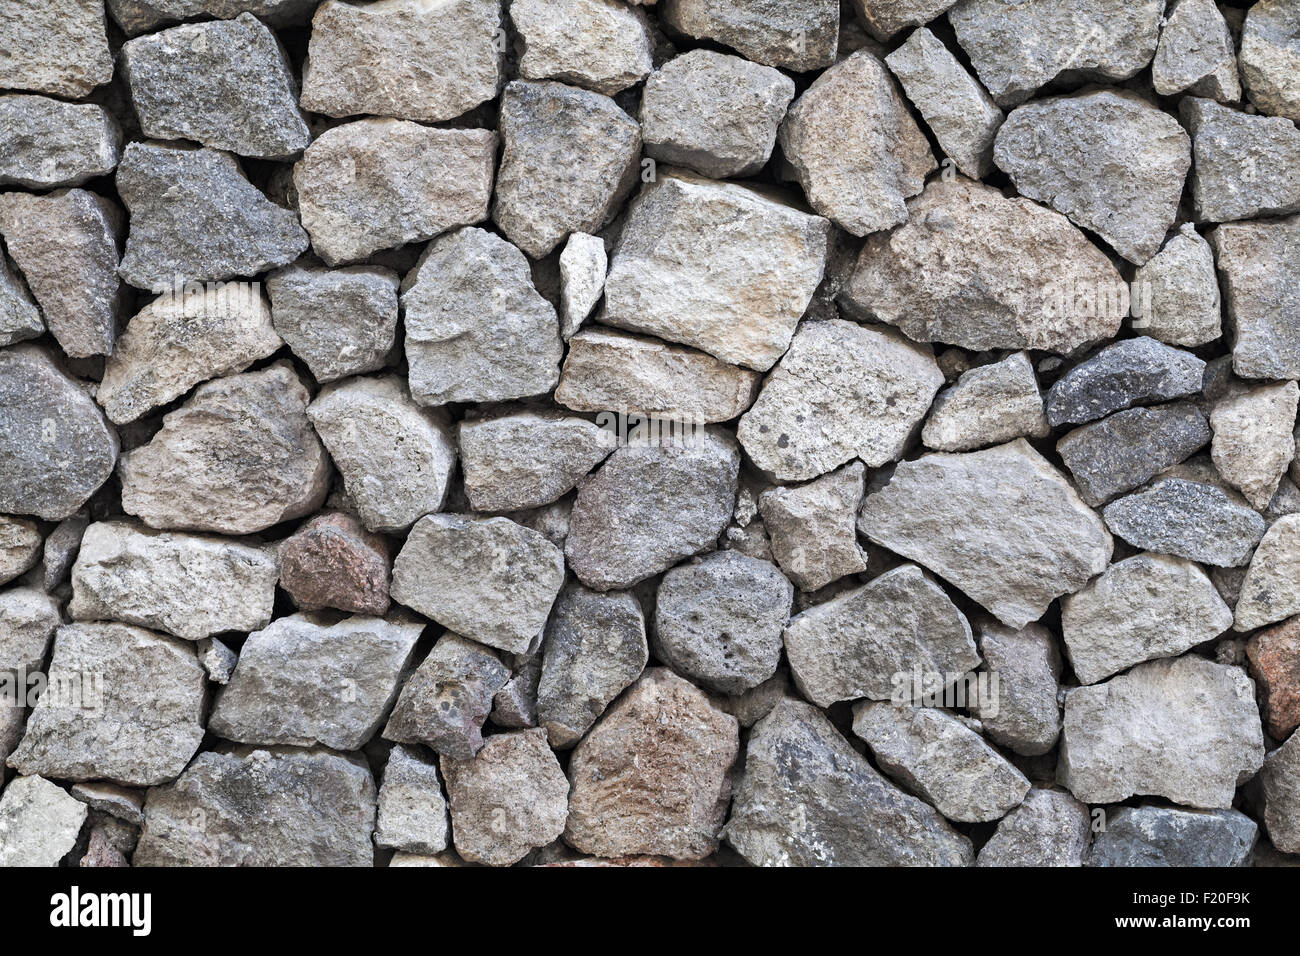 Background texture of gray rough granite stone wall - Stock Image